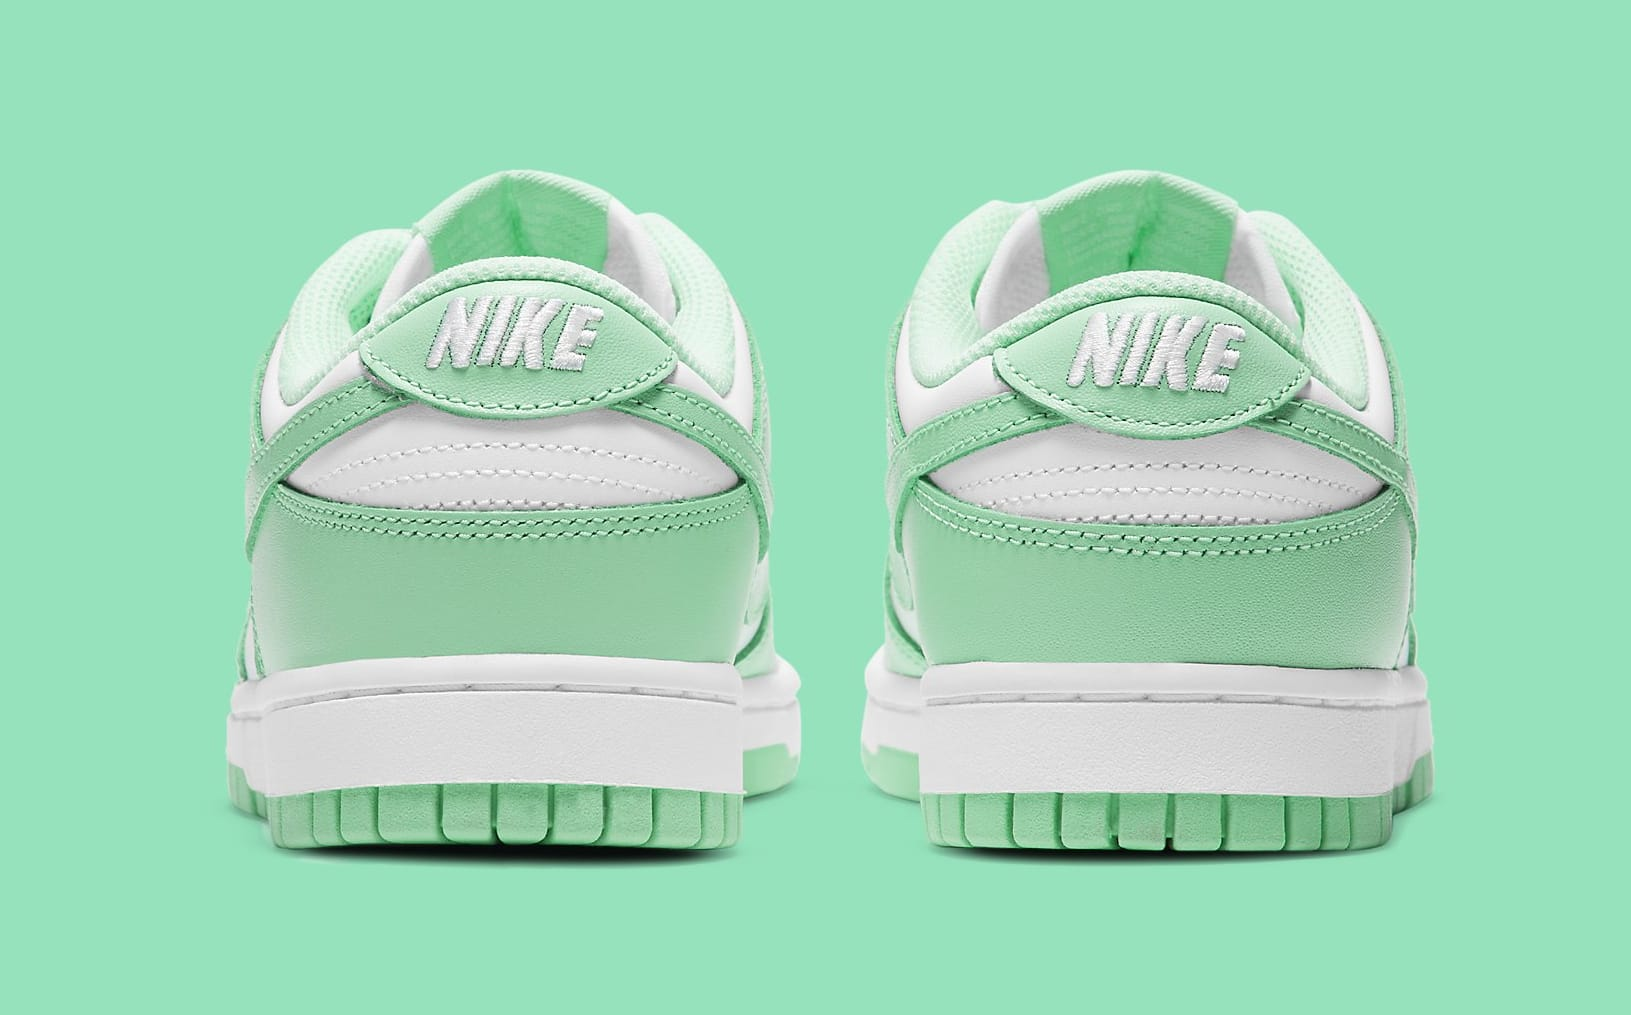 Nike Dunk Low Women's 'Green Glow' DD1503-105 Heel